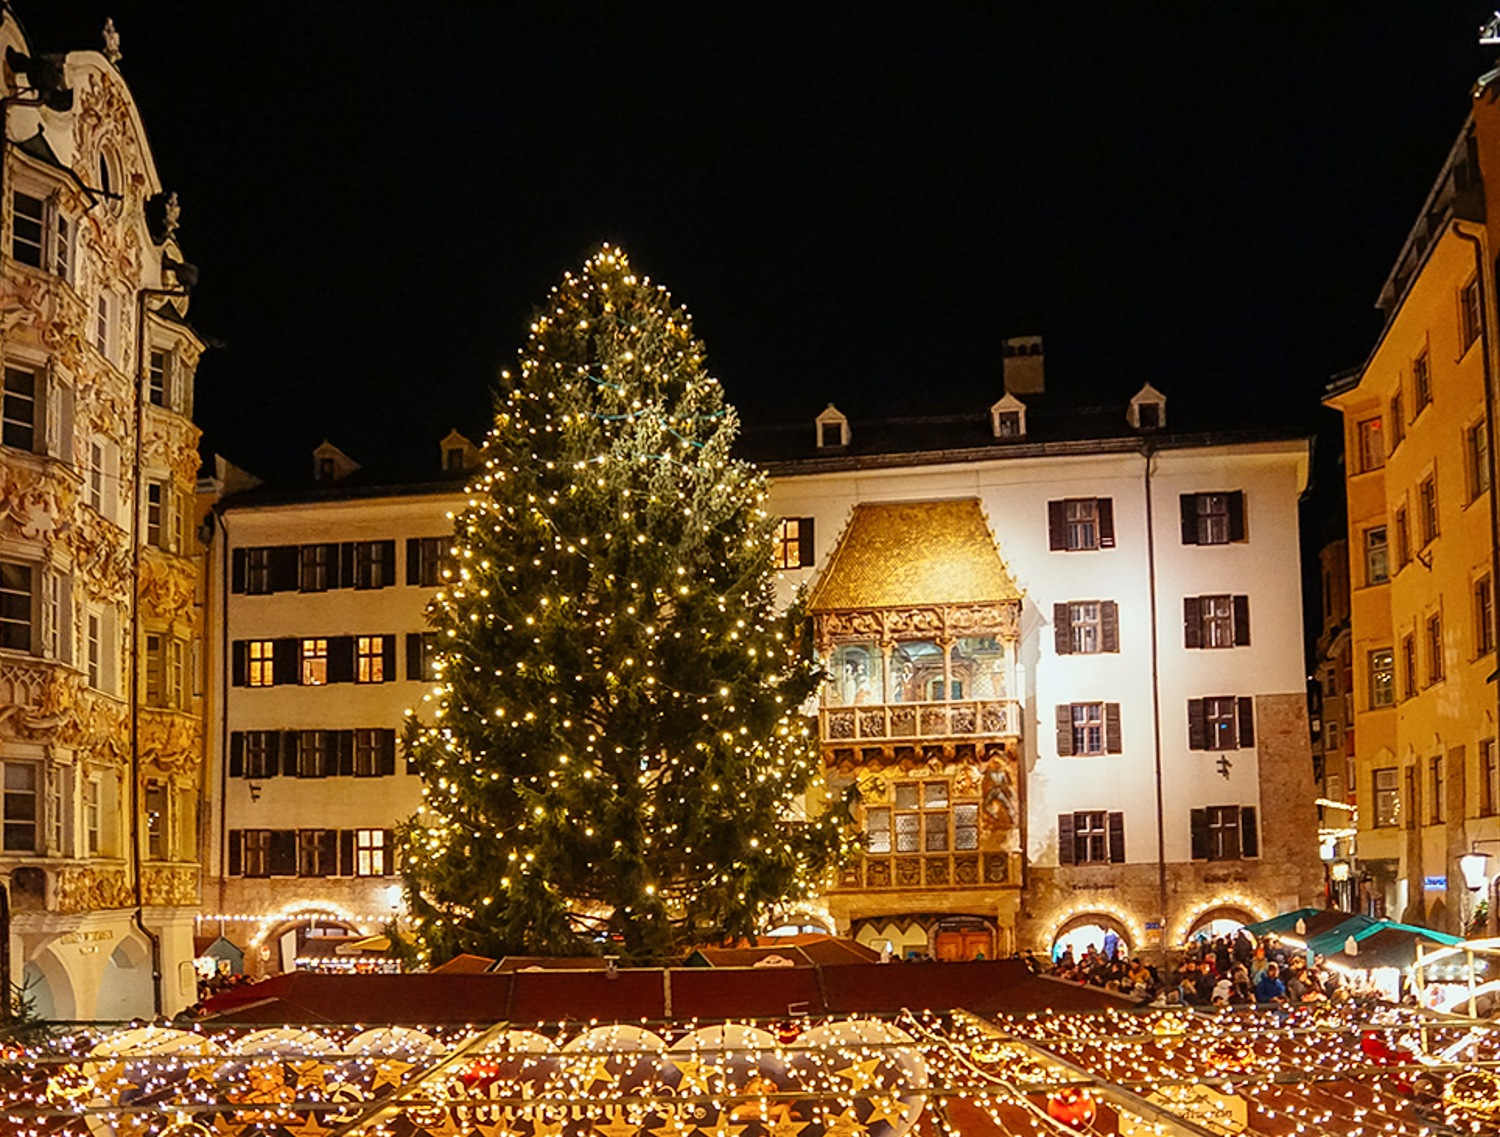 Christmas market in Nuremberg Photo: Annees de Pelerinage